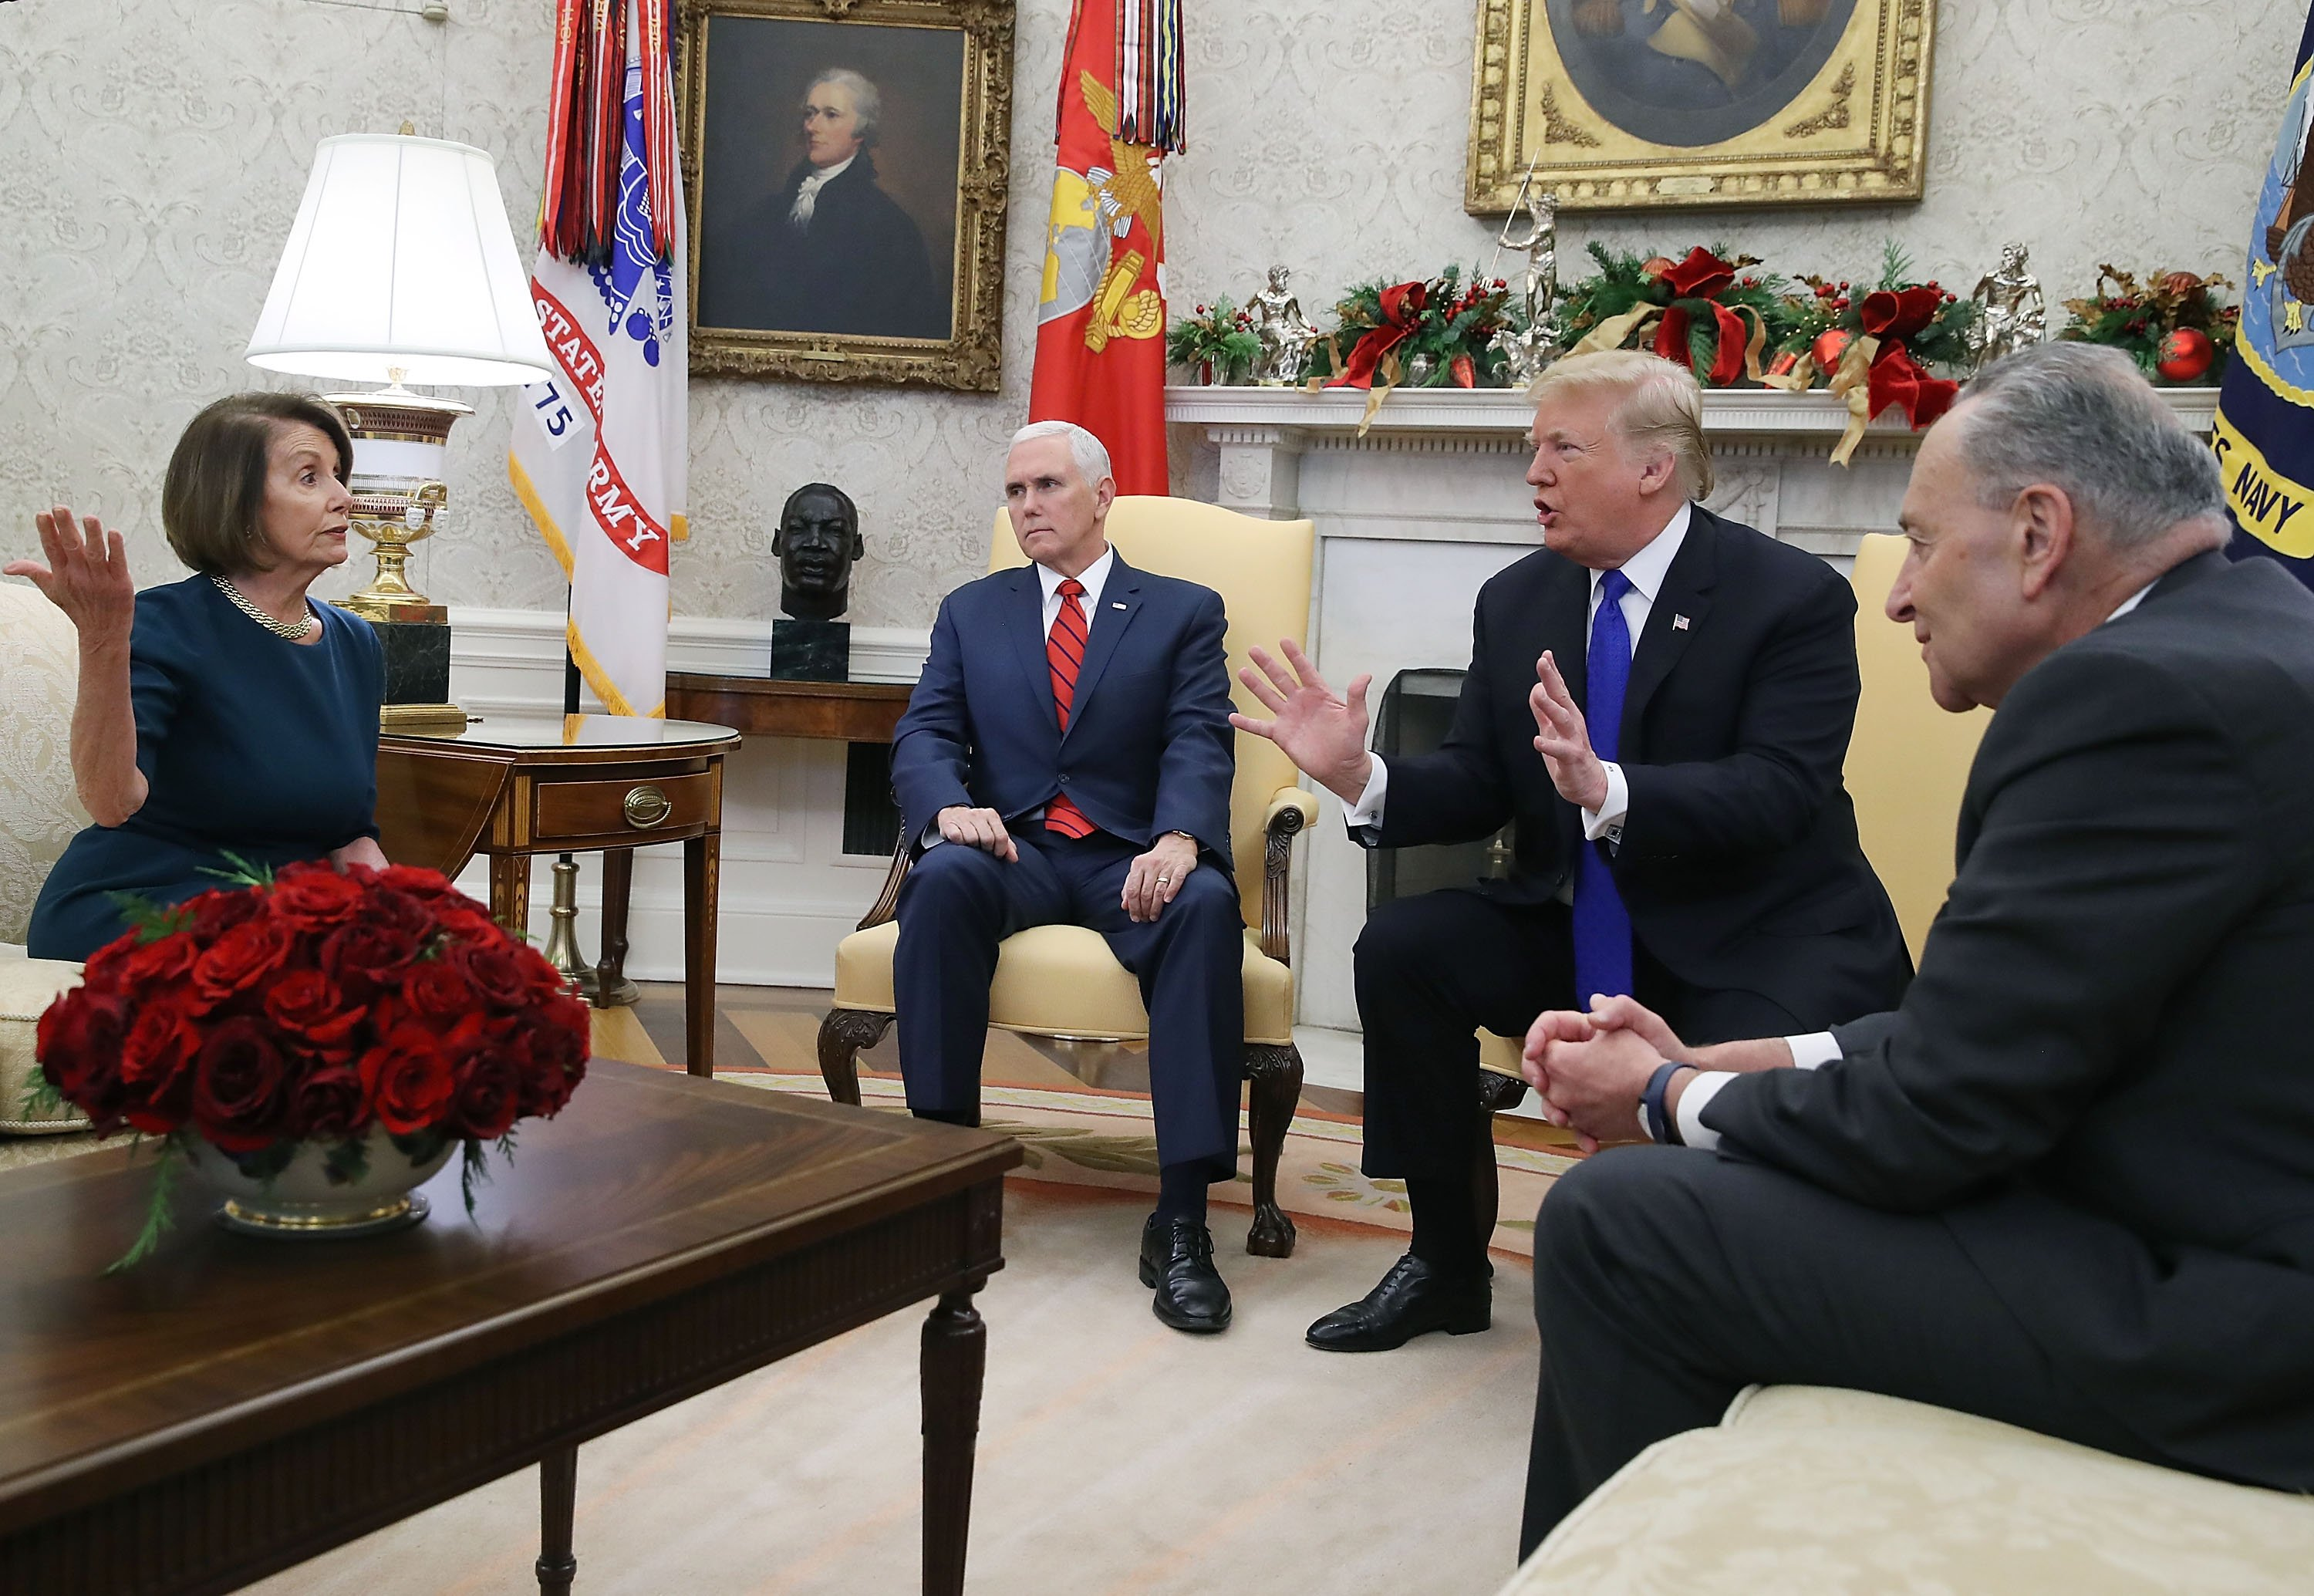 U.S. President Donald Trump (2R) argues about border security with Senate Minority Leader Chuck Schumer (R) and House Minority Leader Nancy Pelosi as Vice President Mike Pence sits nearby in the Oval Office on December 11, 2018 in Washington, DC. (Photo by Mark Wilson/Getty Images)